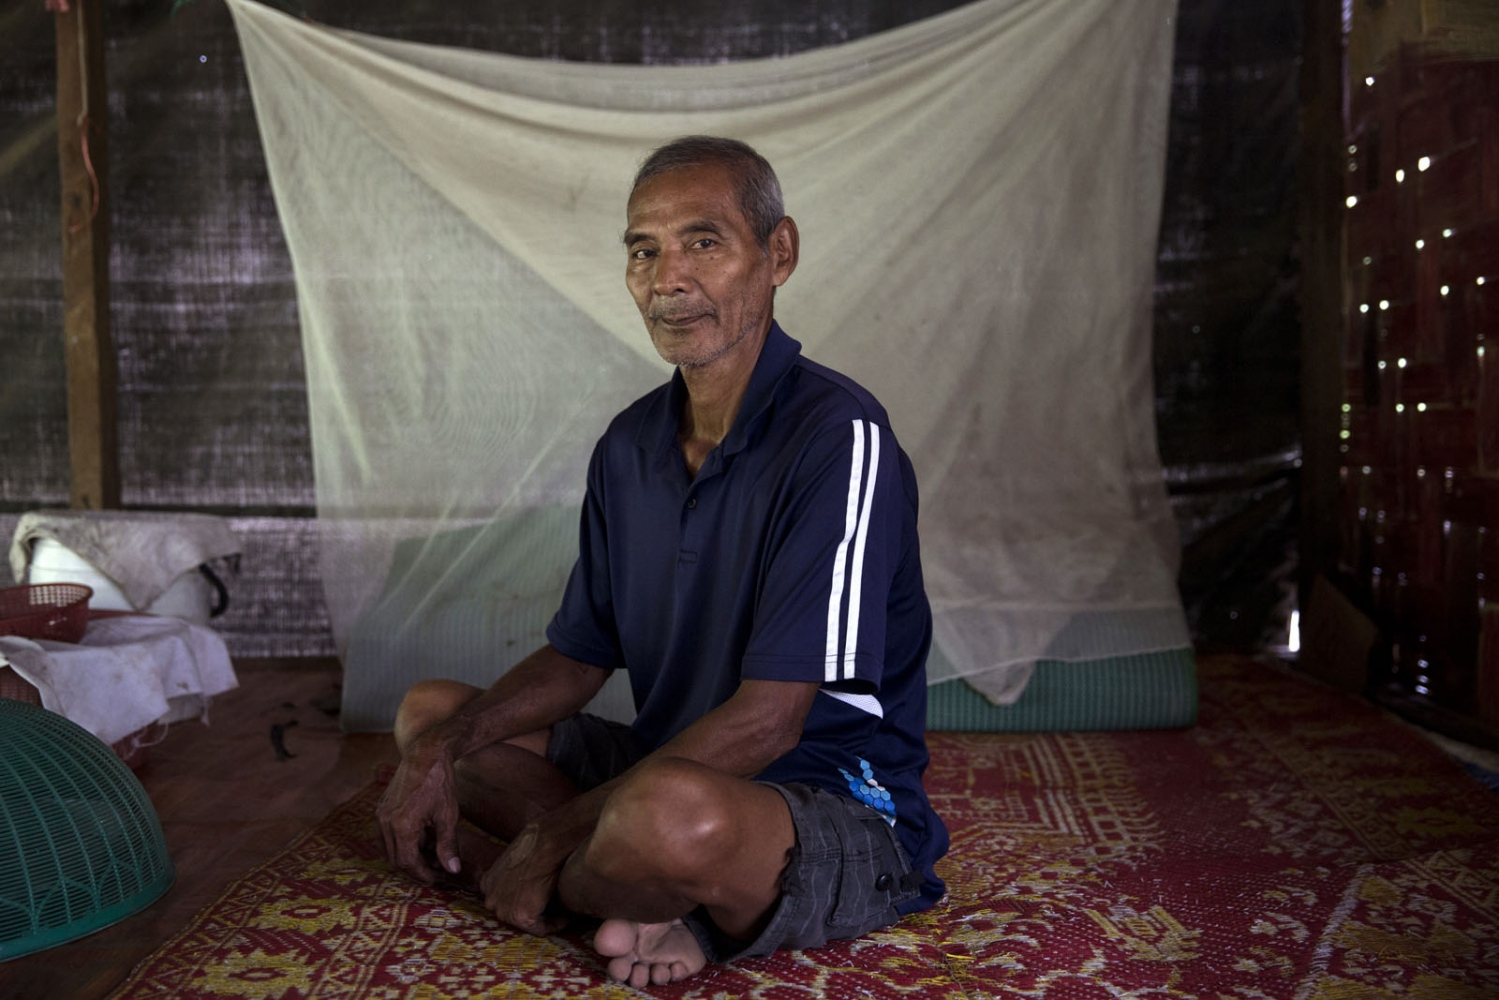 Pasit Bunban, 67, sits where he sleeps with his mosquito net hanging behind.